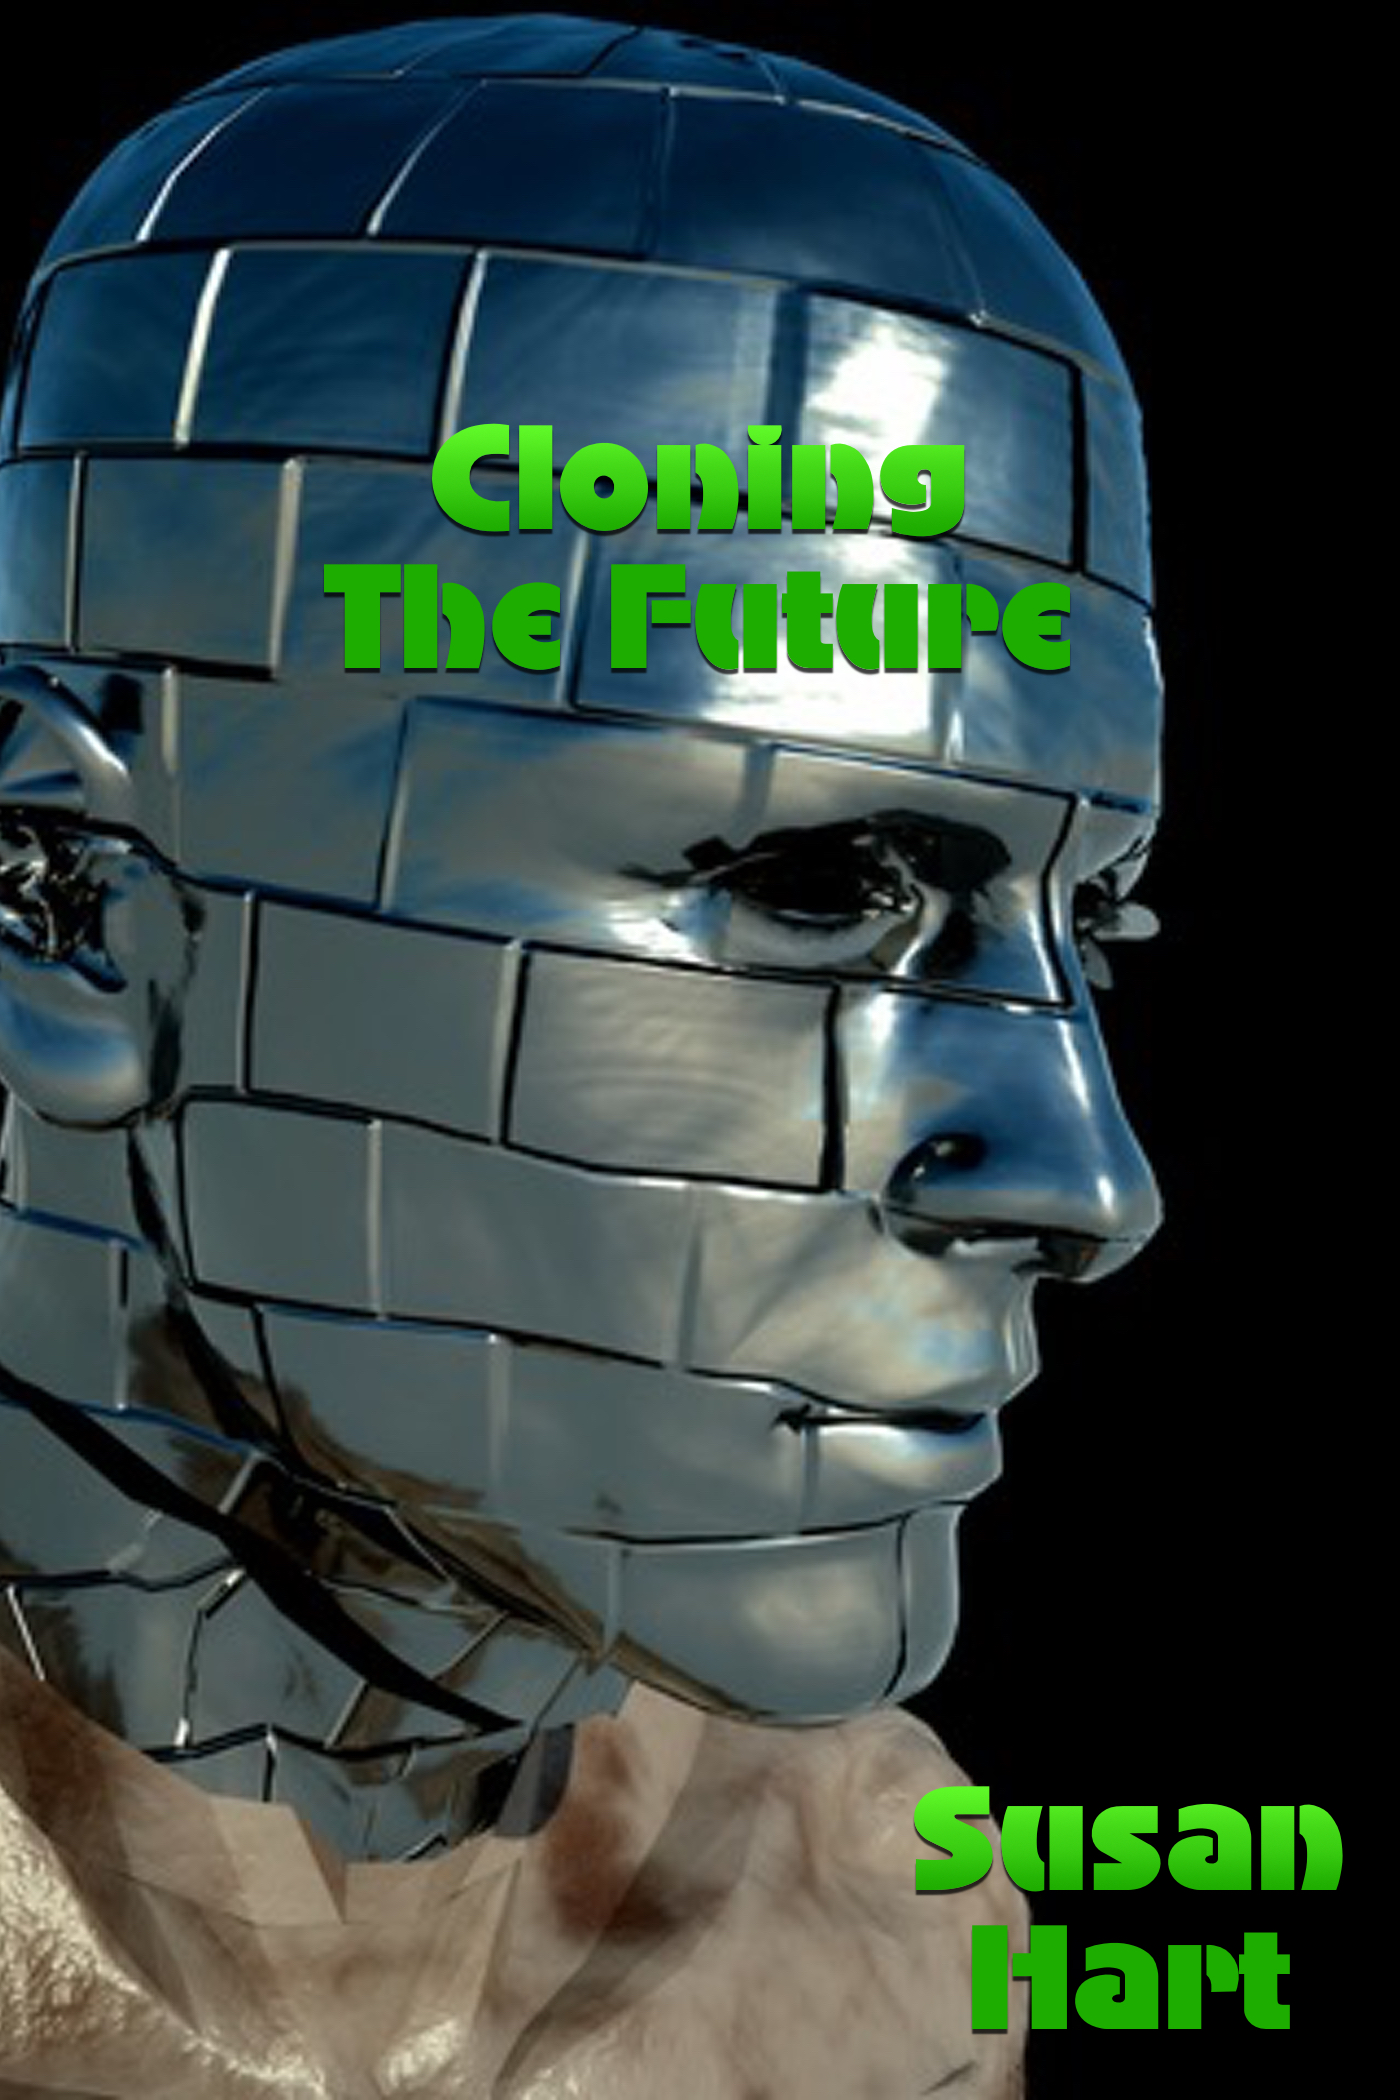 a view on cloning in the future But before examining such forces, we need a clearer view of human cloning itself the rising prospect of human cloning  regardless of any future legal resolutions of such matters, child clones (not to mention others inside and outside the family) will almost certainly experience confusion.